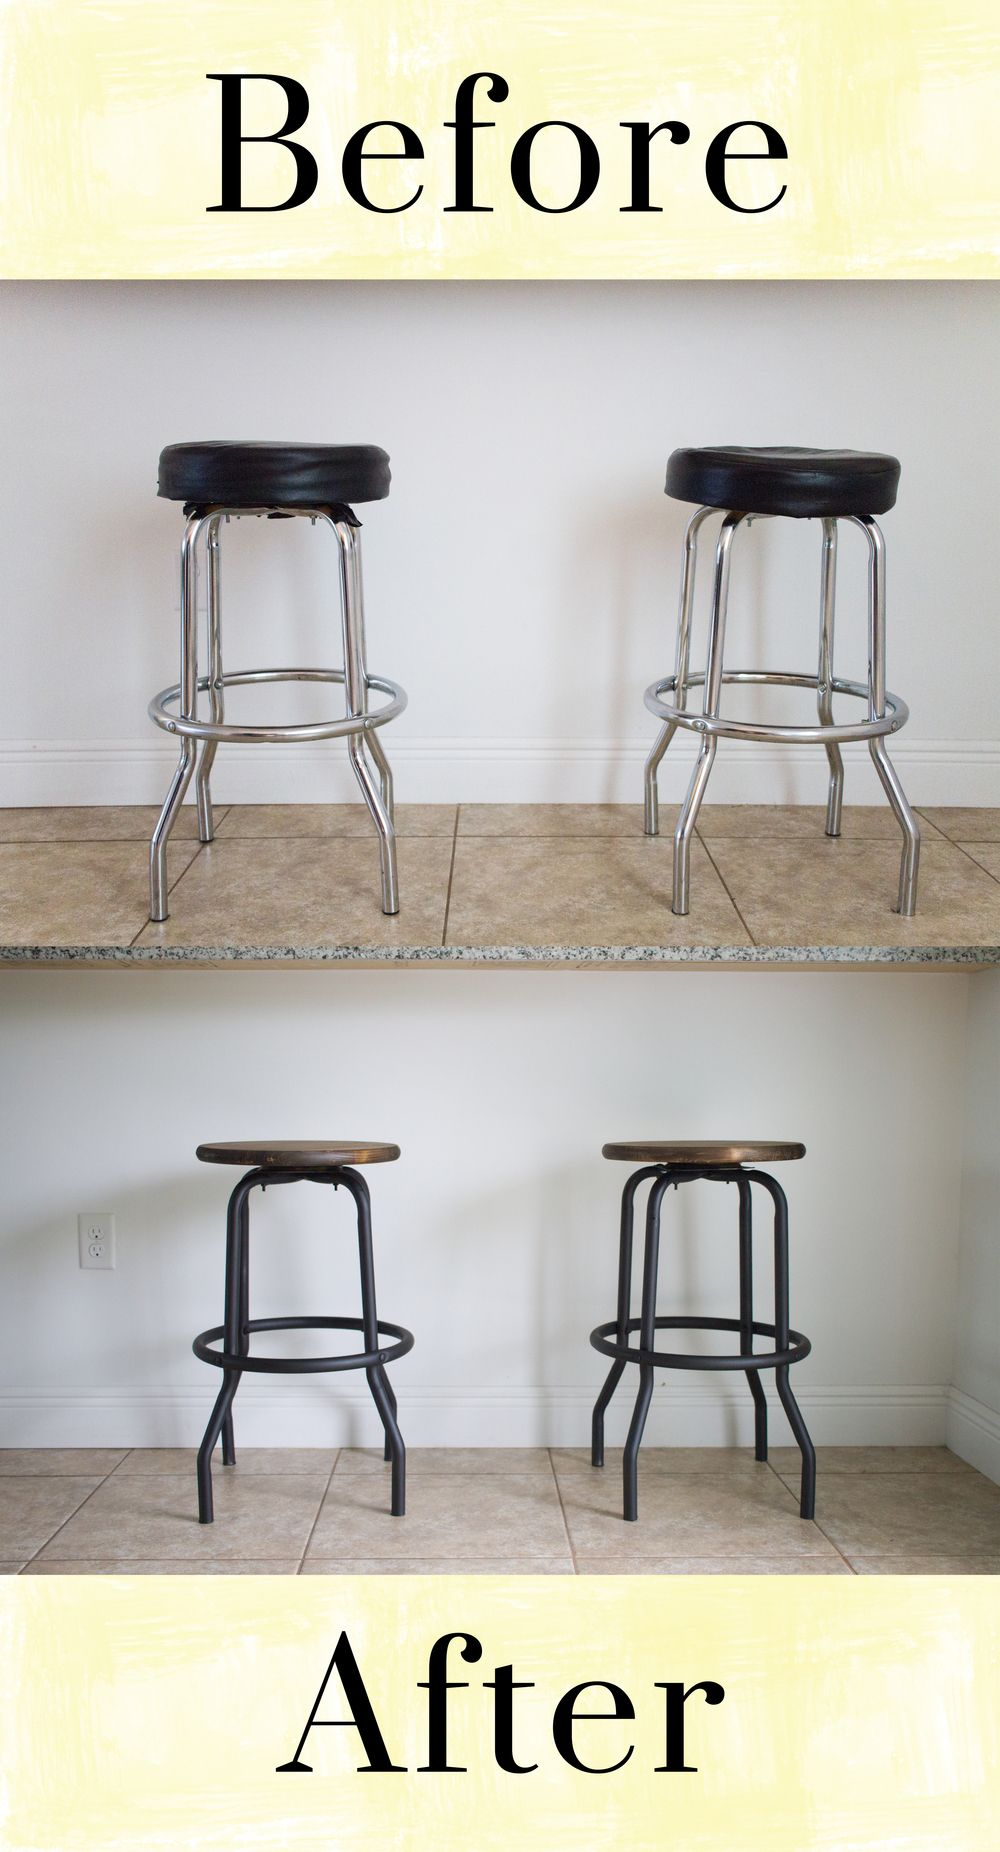 Outdated to Industrial Barstool Makeover DIY. Love this upcycle of old barstools with a rustic wooden seat refinish. Great idea for kitchen or dinette. ...  sc 1 st  Pinterest & Outdated to Industrial Barstool Makeover DIY u2026 | Pinteresu2026 islam-shia.org